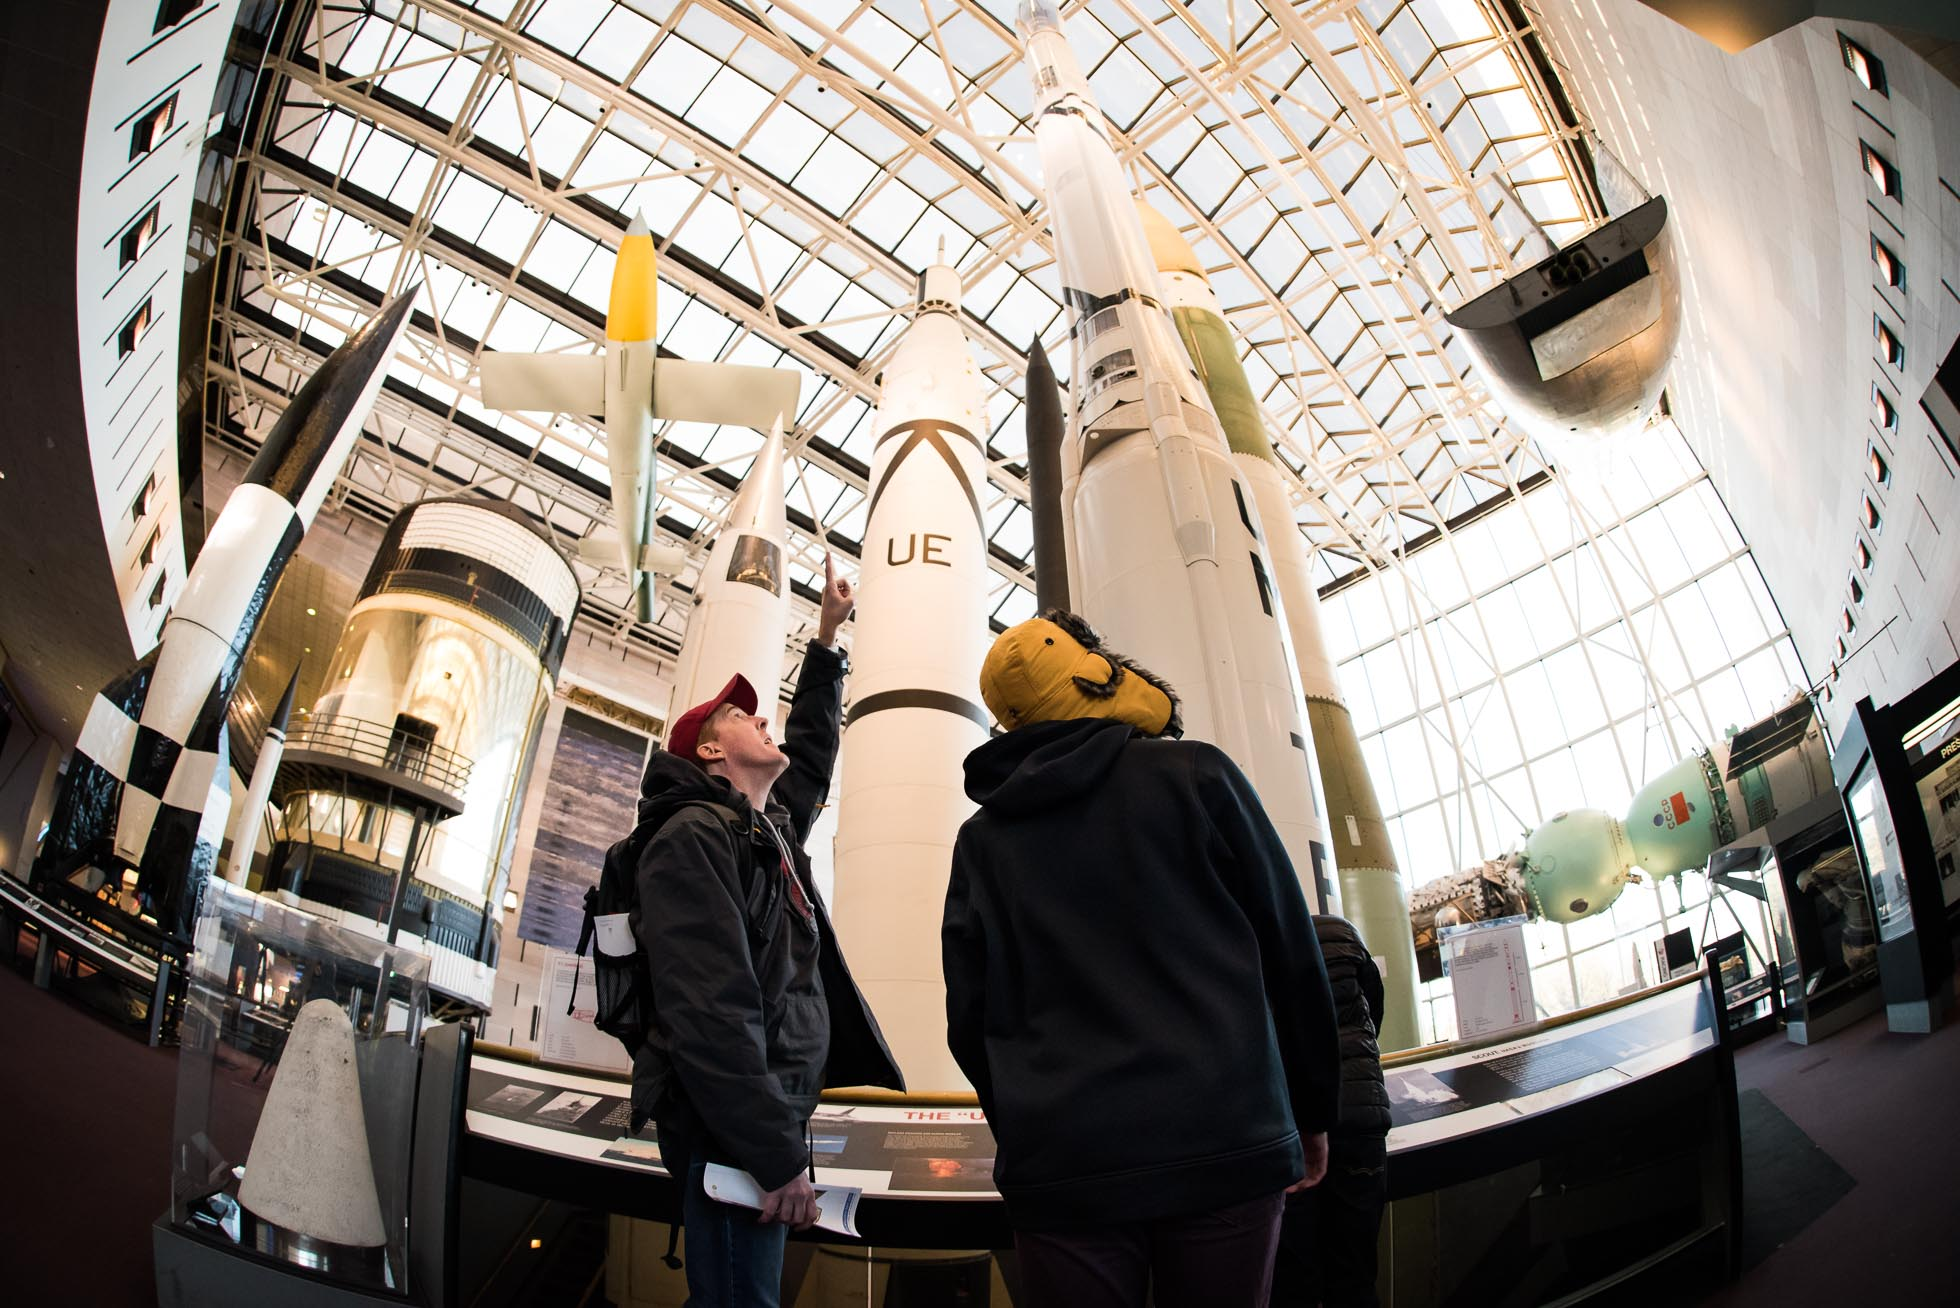 Fish eye image of a dad with his son at the National Air and Space Museum - pointing up at the rockets